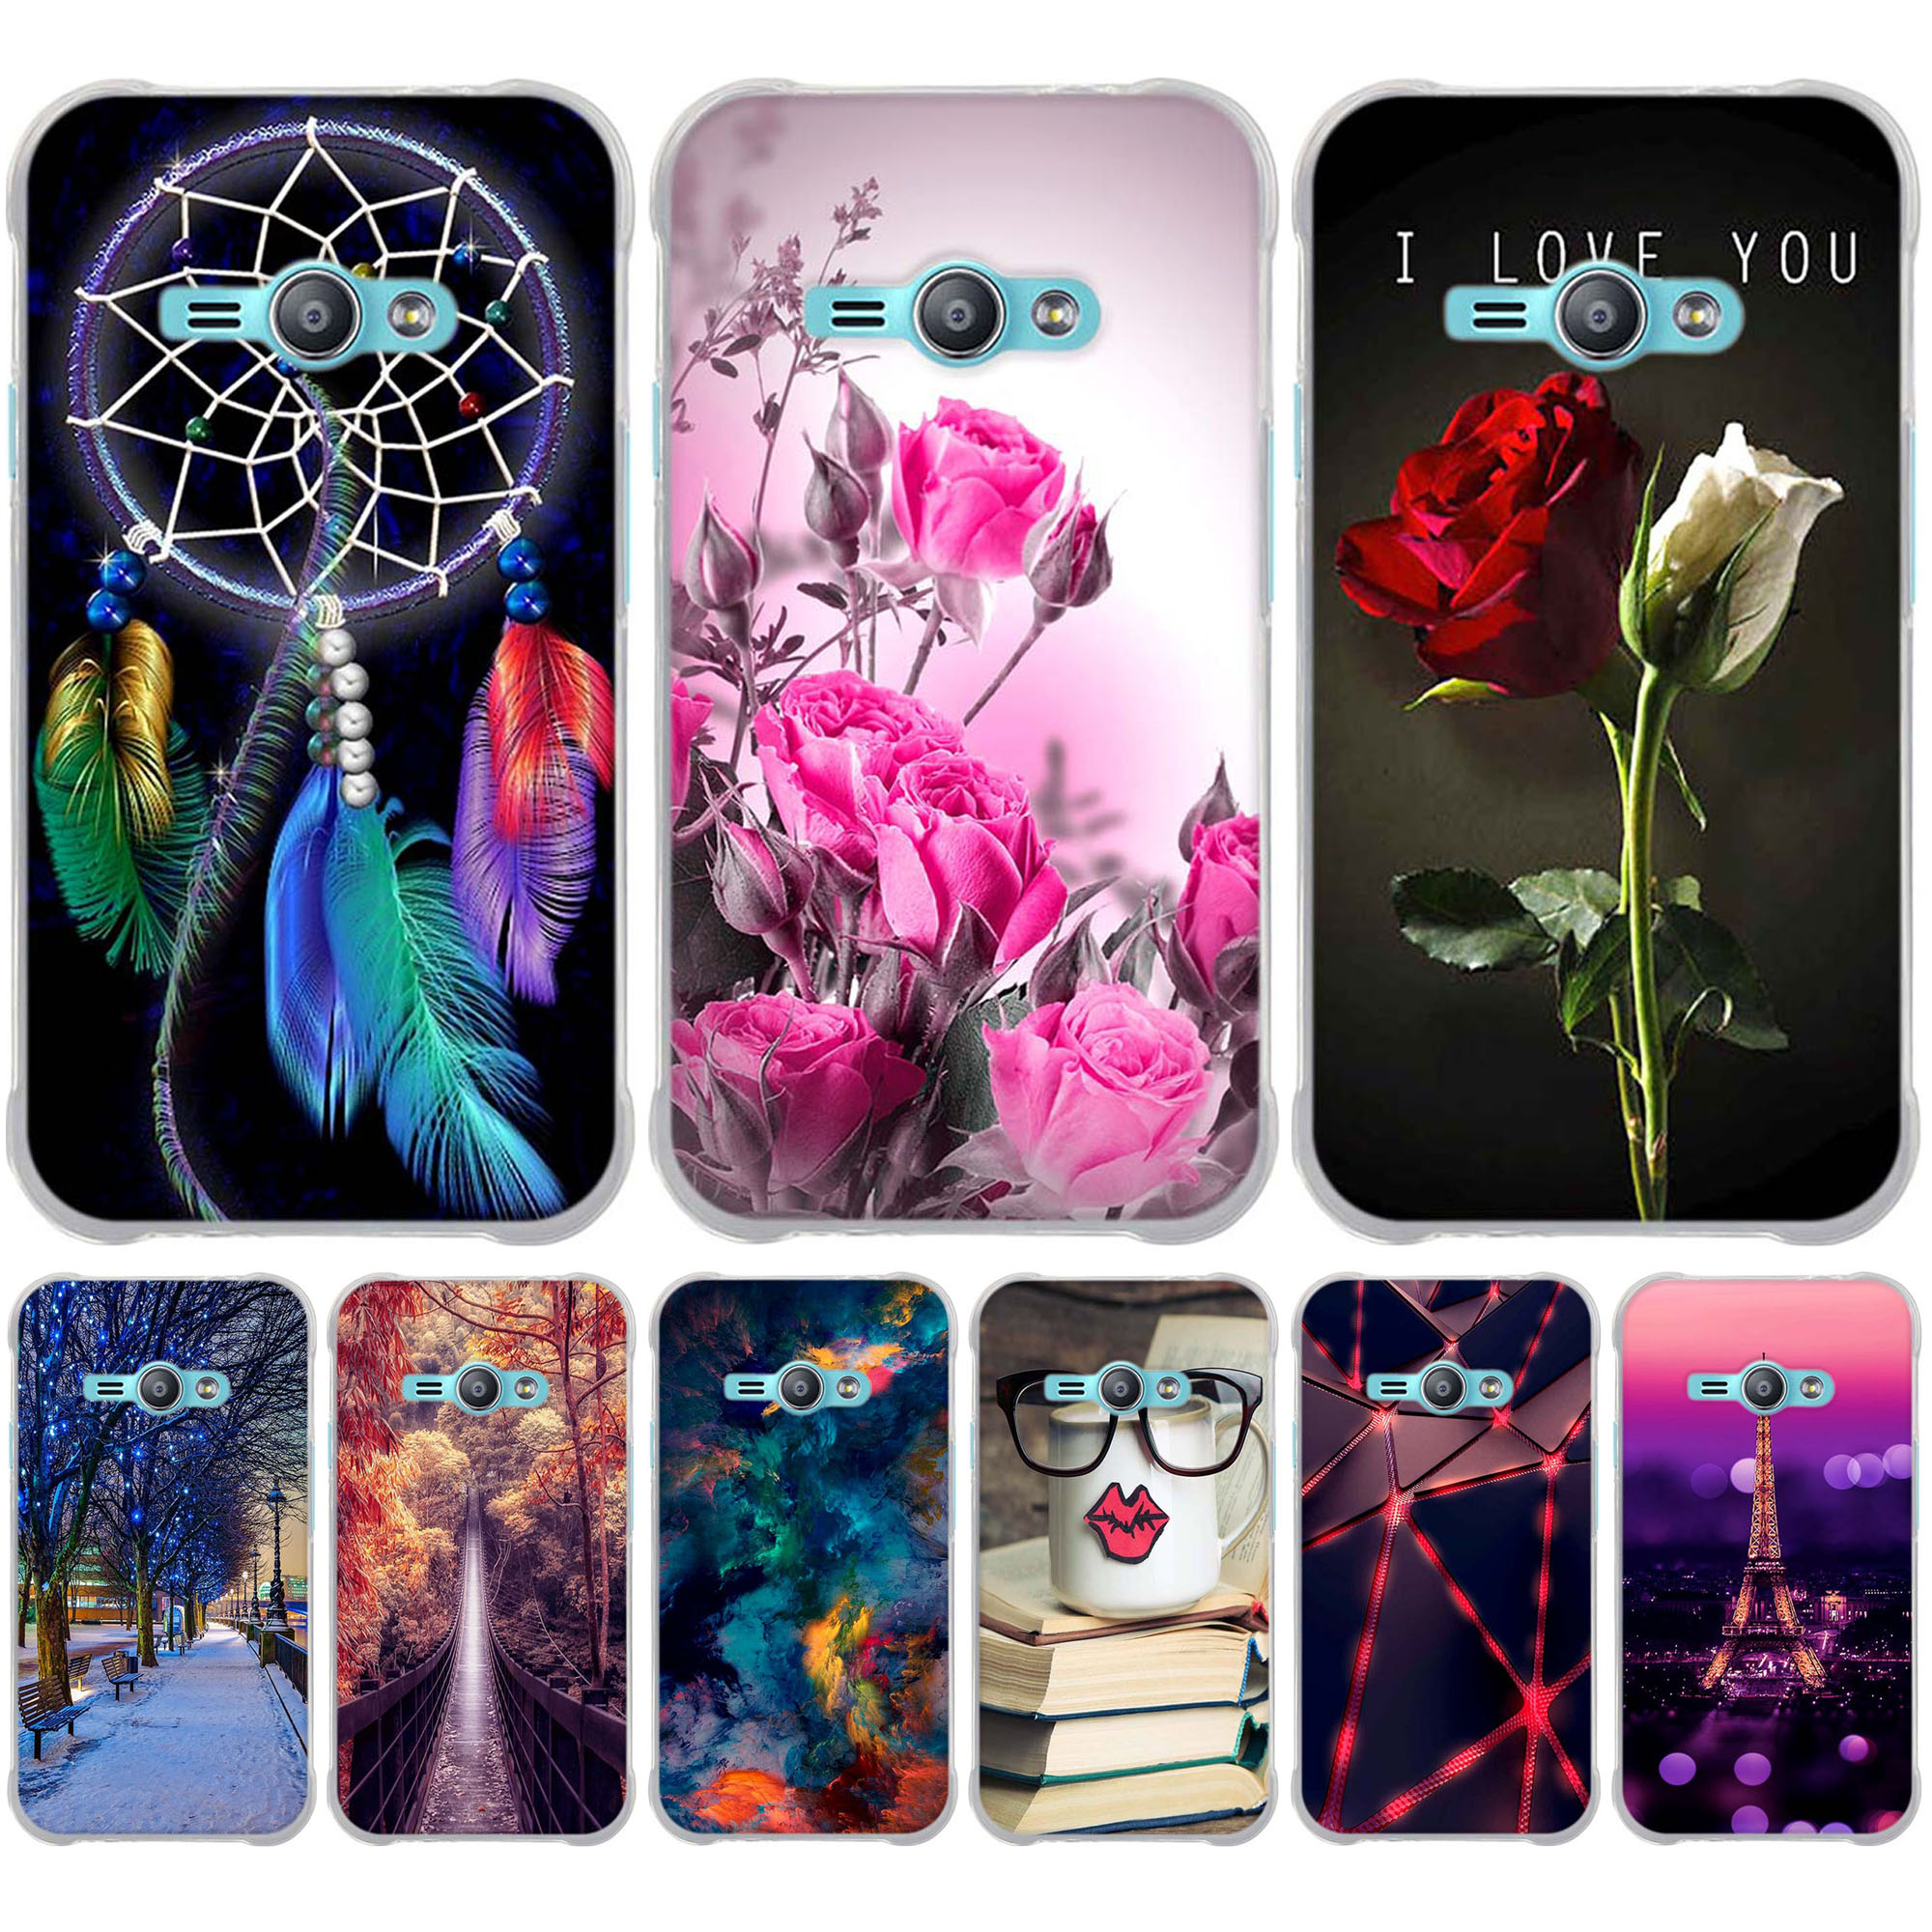 Samsung Galaxy J1 Ace Phone Cover 2000x2000 Wallpaper Teahub Io